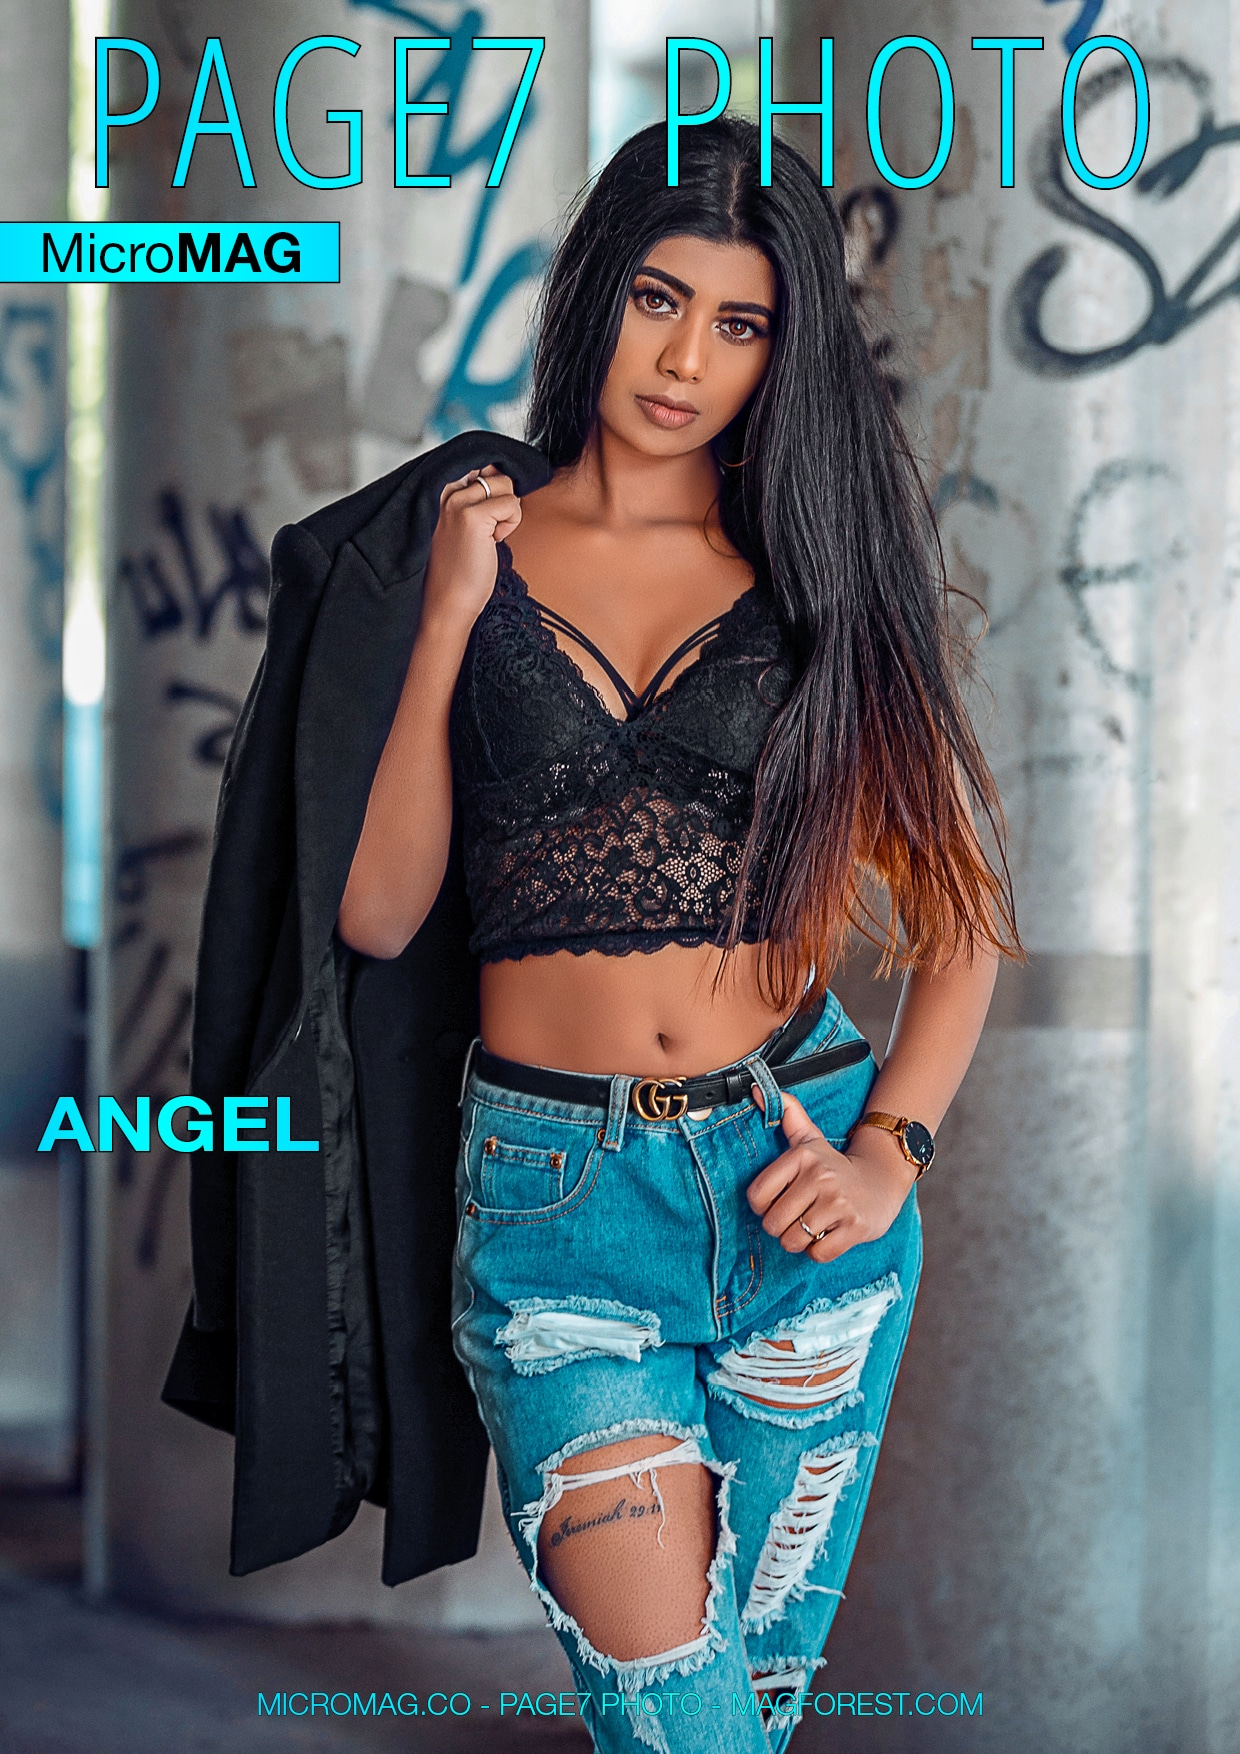 PAGE7 Photo MicroMAG - Angel 1